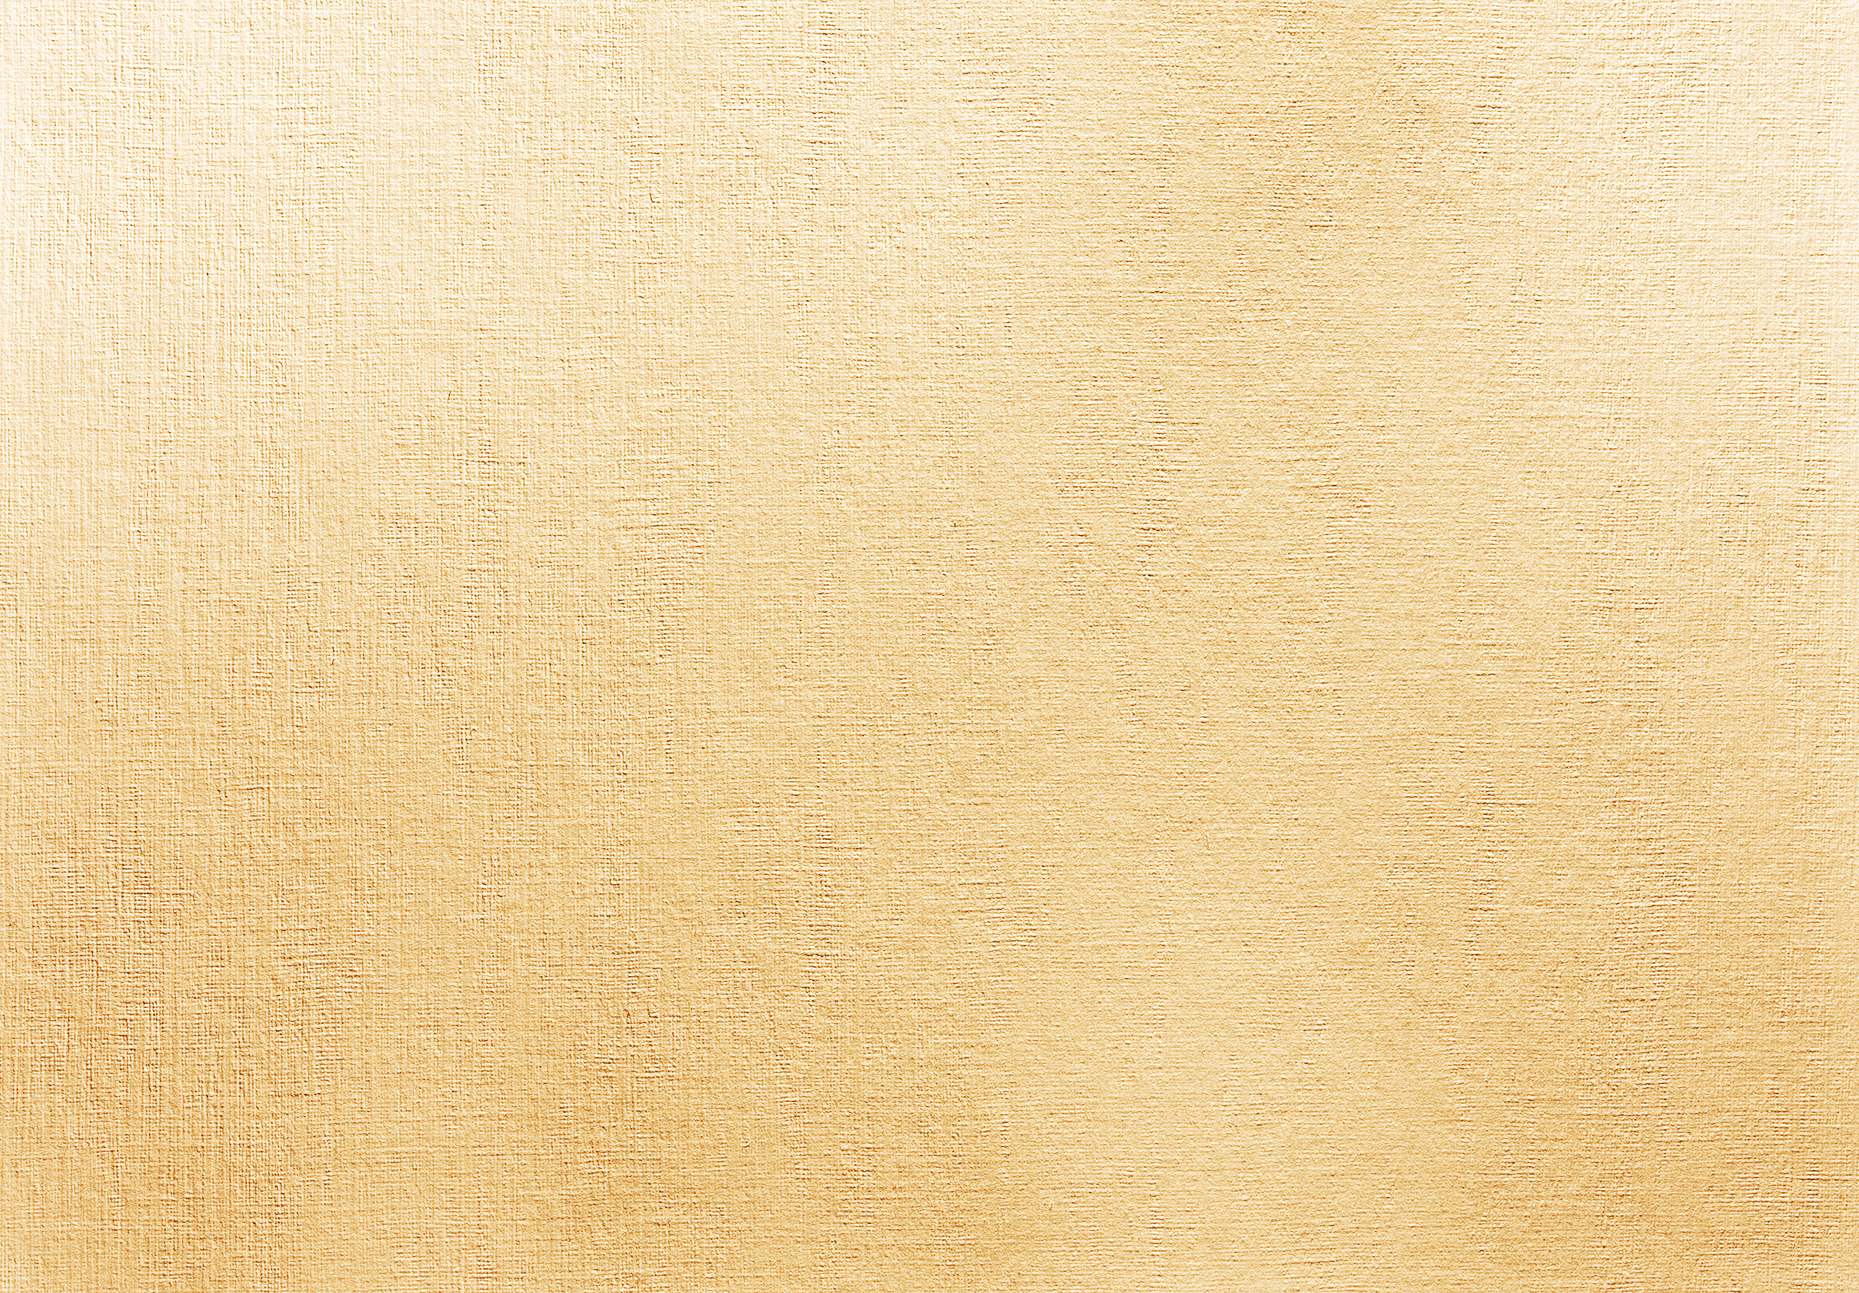 Yellow Natural Paper Background Texture Vintage - PhotoHDX